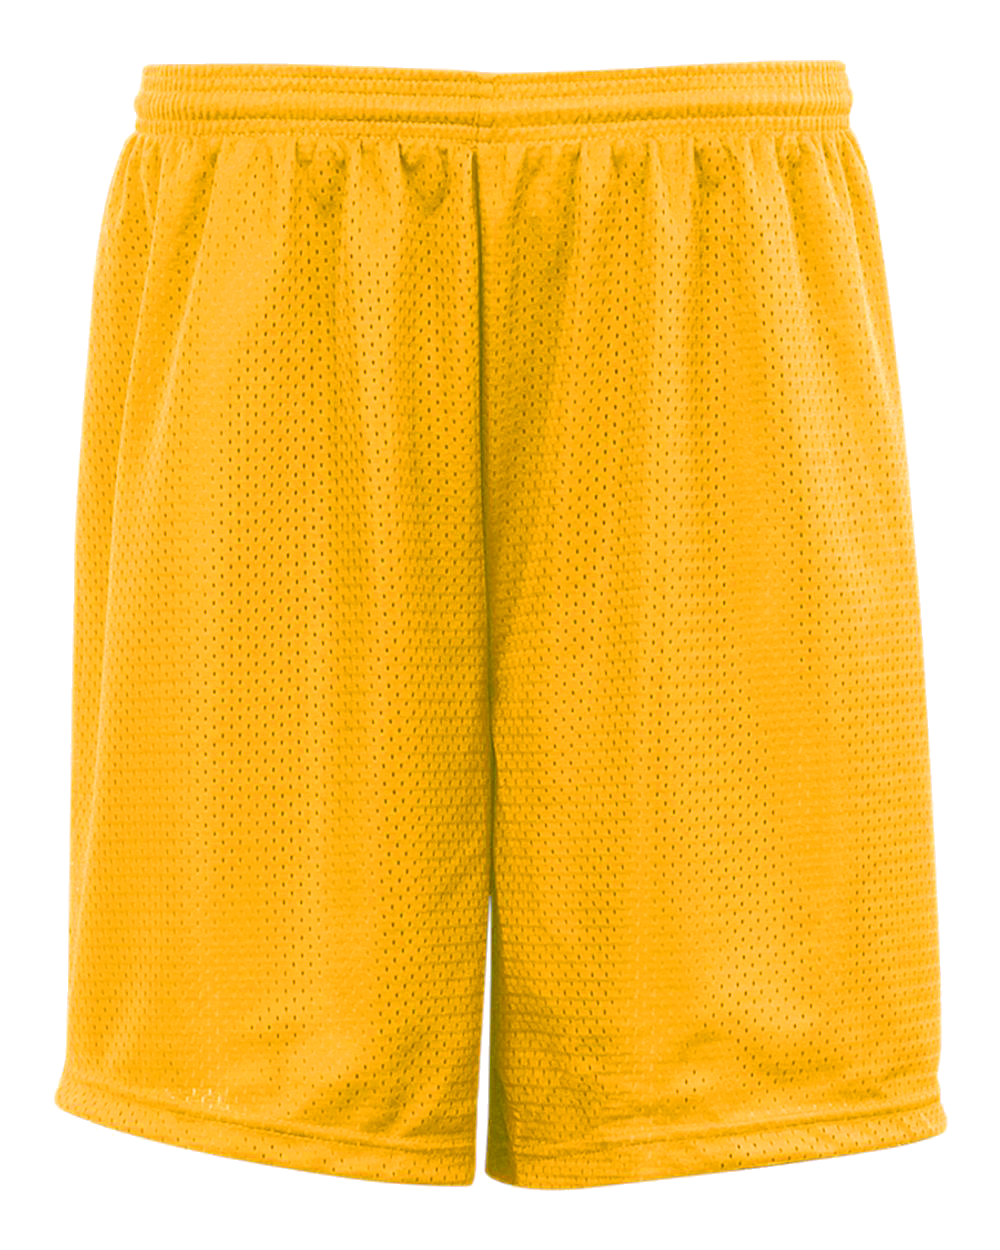 Mesh/Tricot 9 Inch Short - Gold